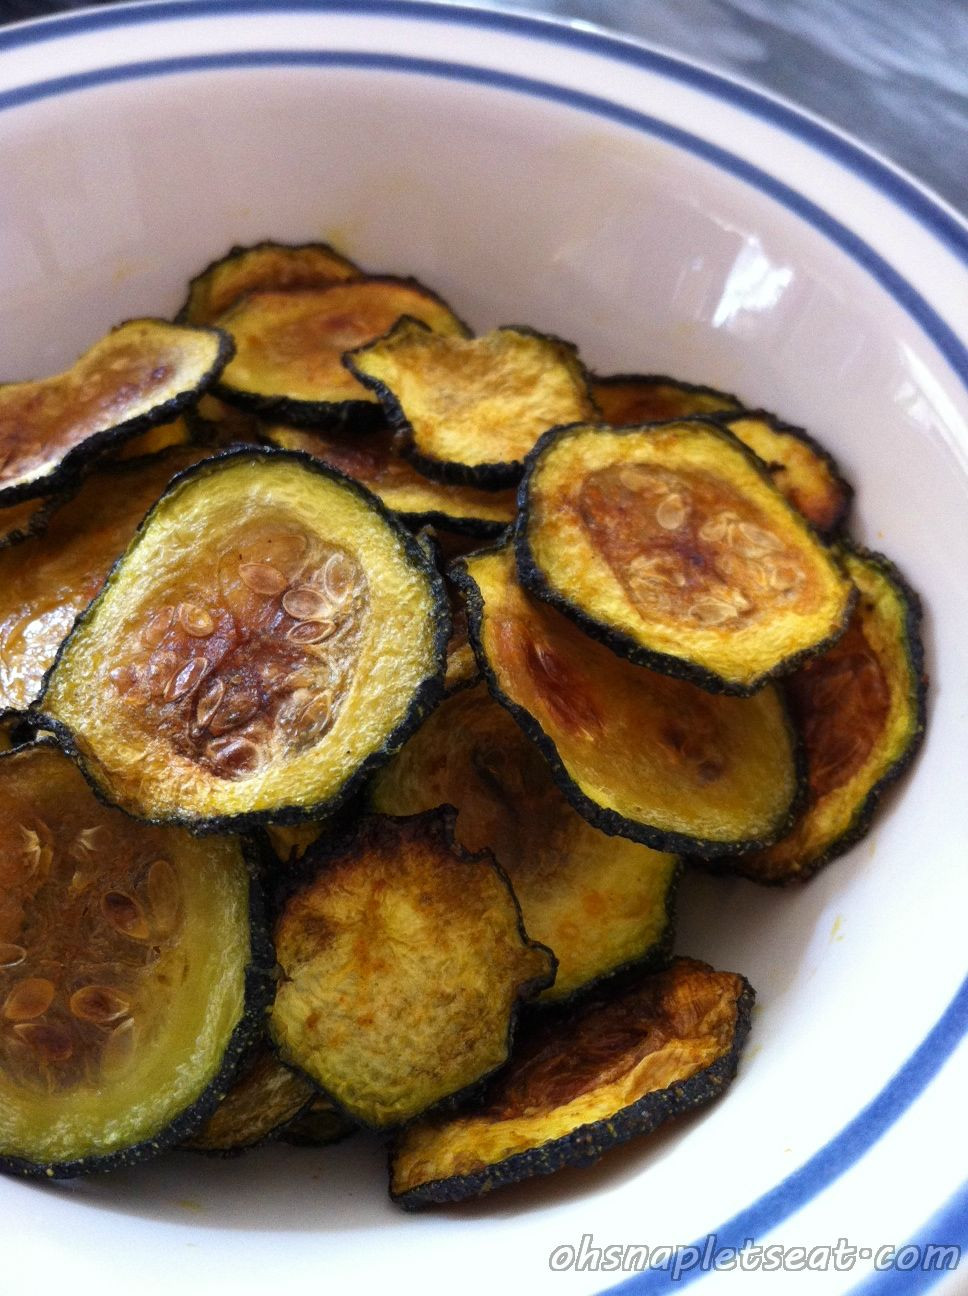 Healthy Baked Snacks  Oven Baked Zucchini Chips Paleo Keto Vegan Whole30